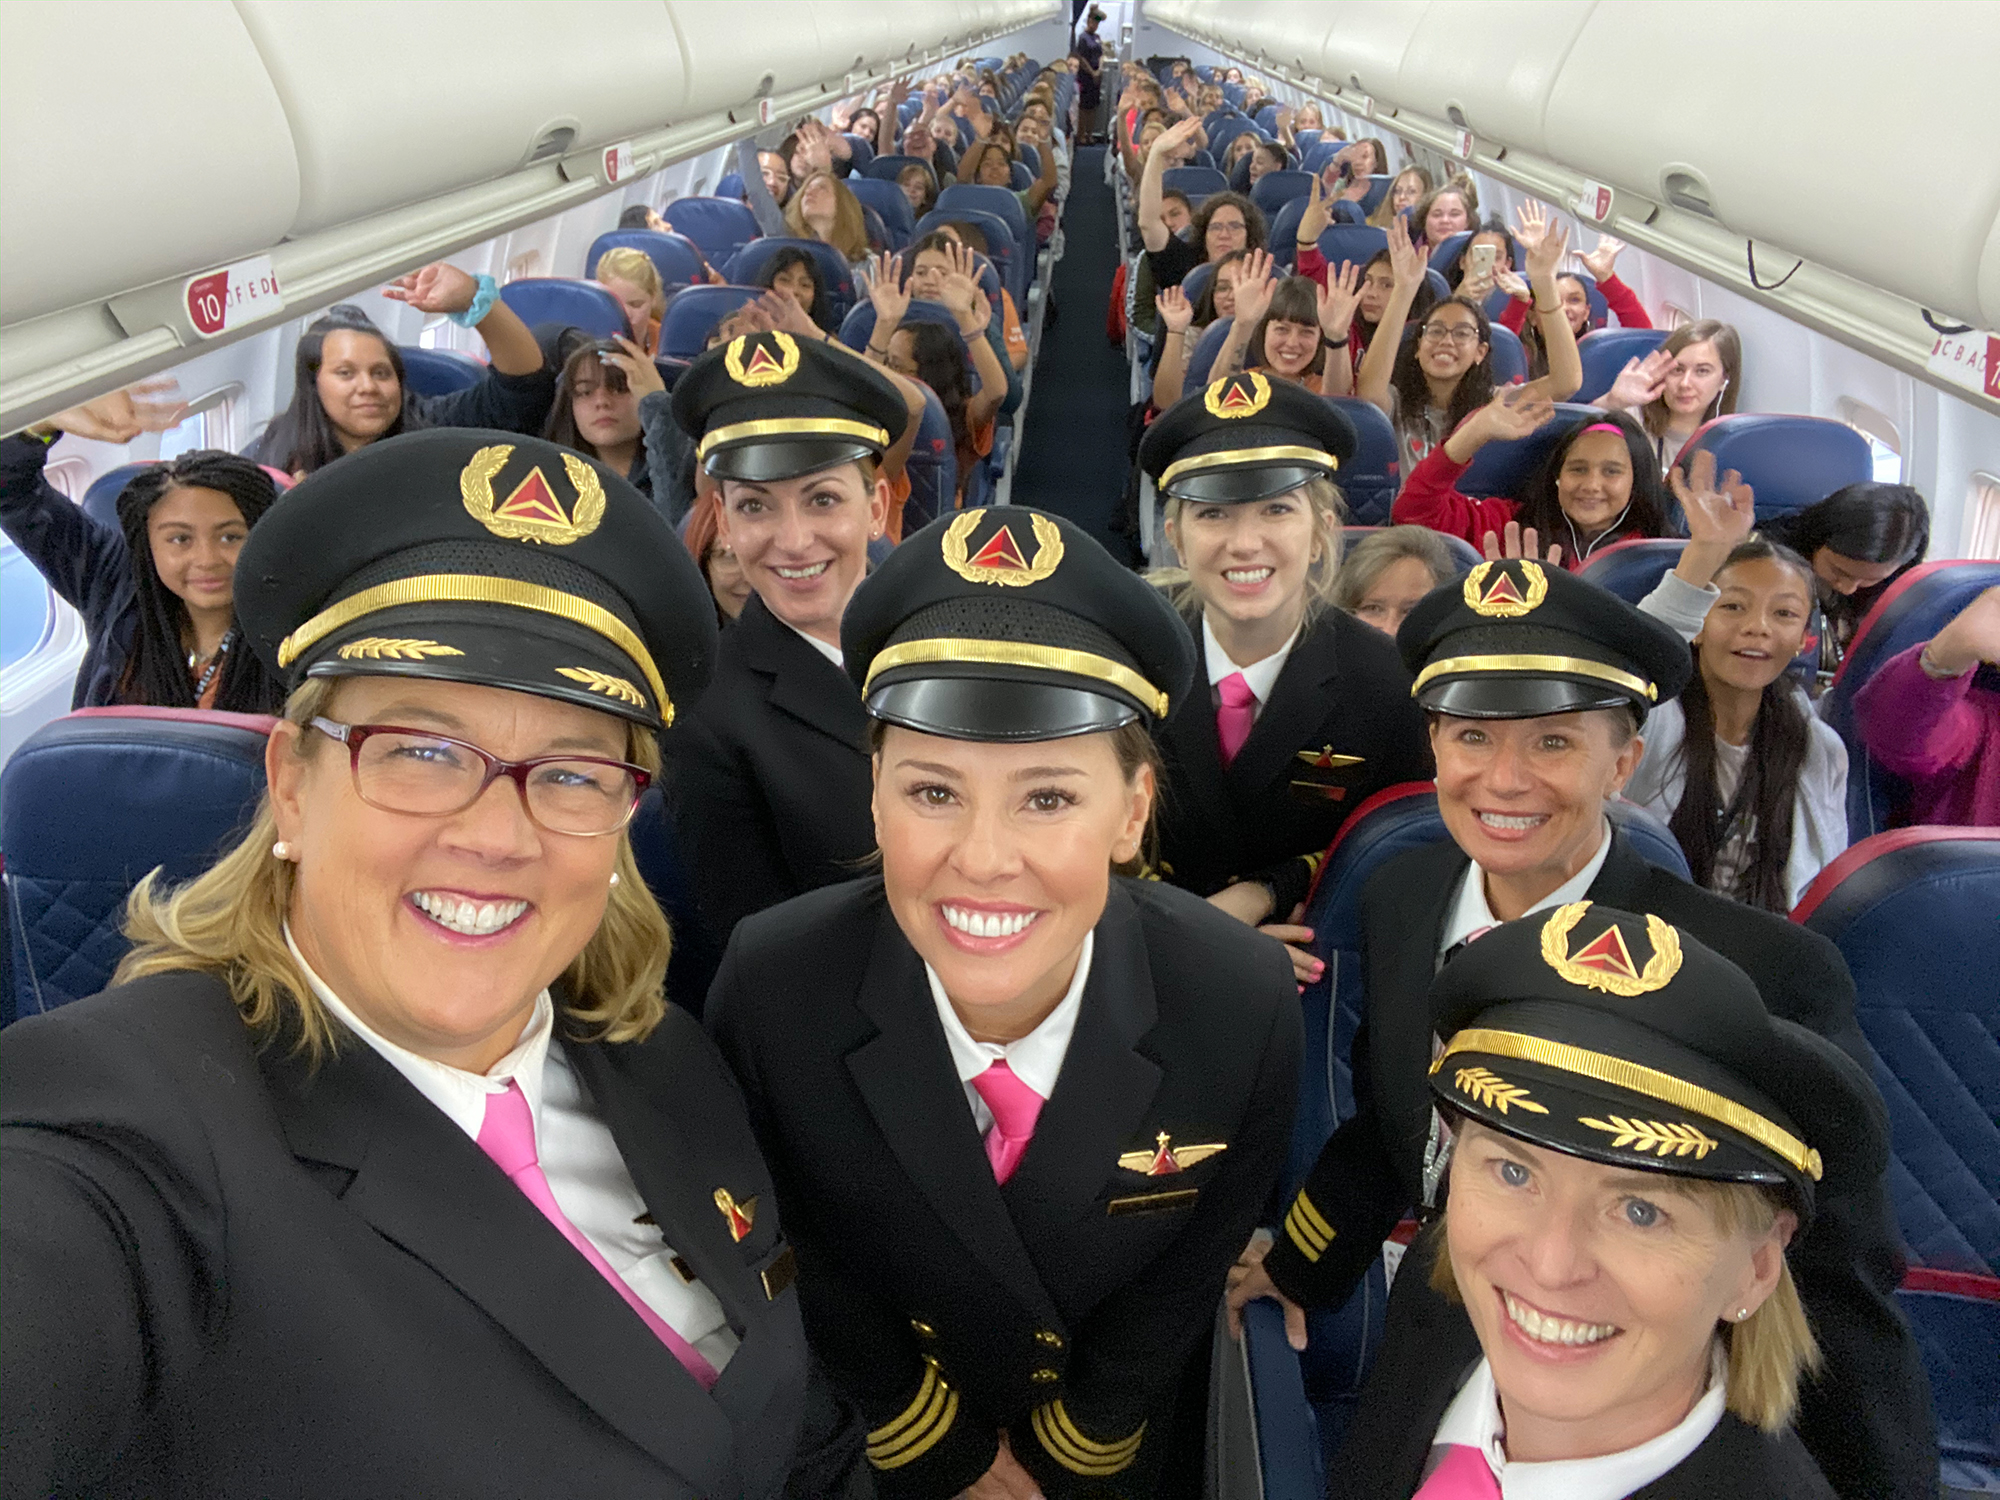 """Delta today celebrated International Girls in Aviation Day with its fifth-annual WING Flight - """"Women Inspiring our Next Generation"""" - carrying 120 girls ages 12-18 from Salt Lake City to NASA in Houston as we work to close the gender gap in aviation."""